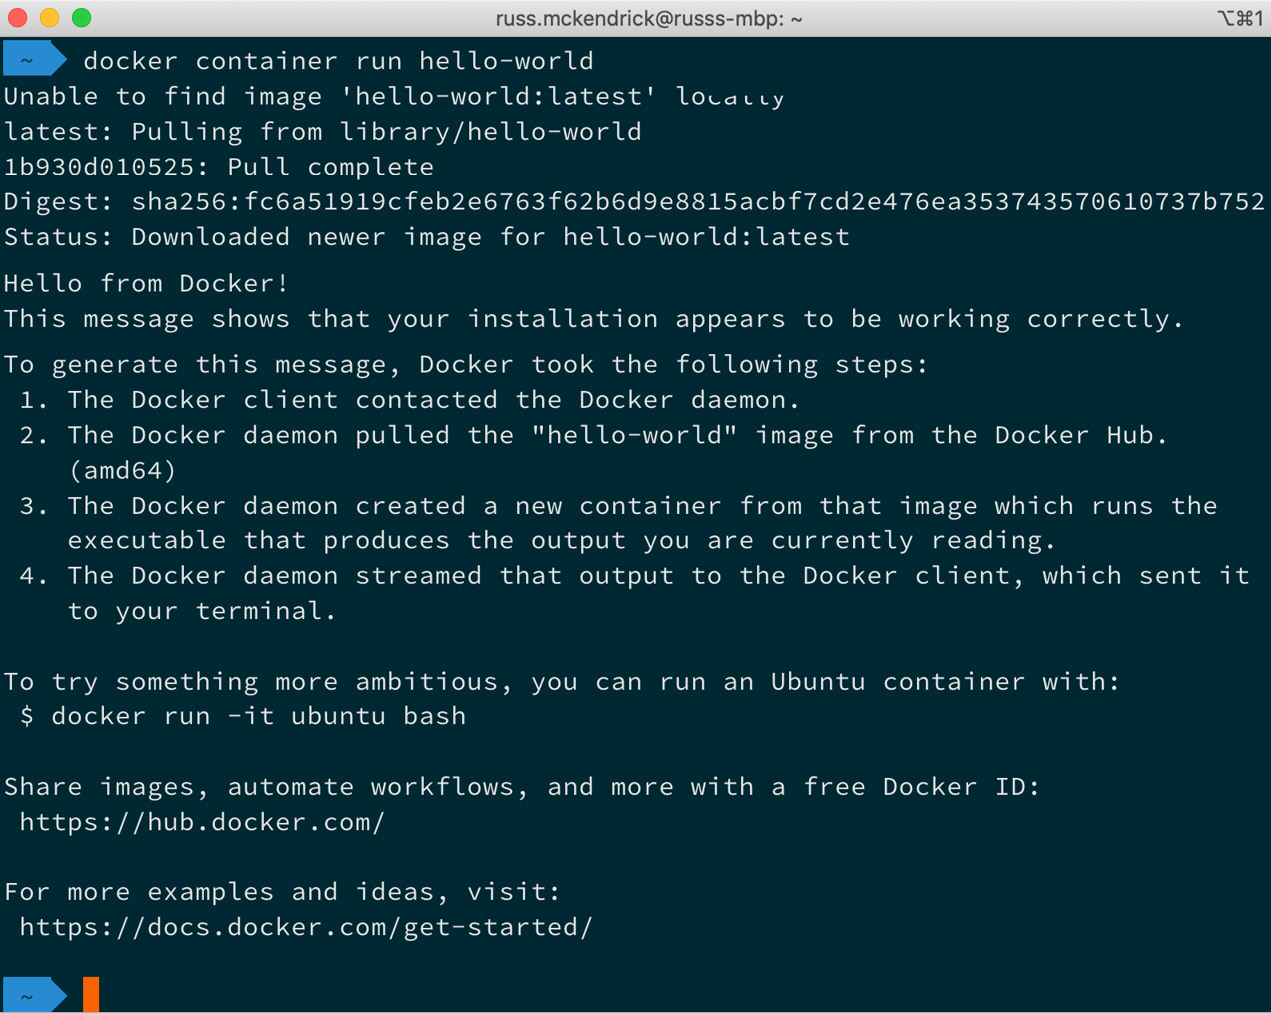 Figure 1.12 – Output for docker container run hello-world